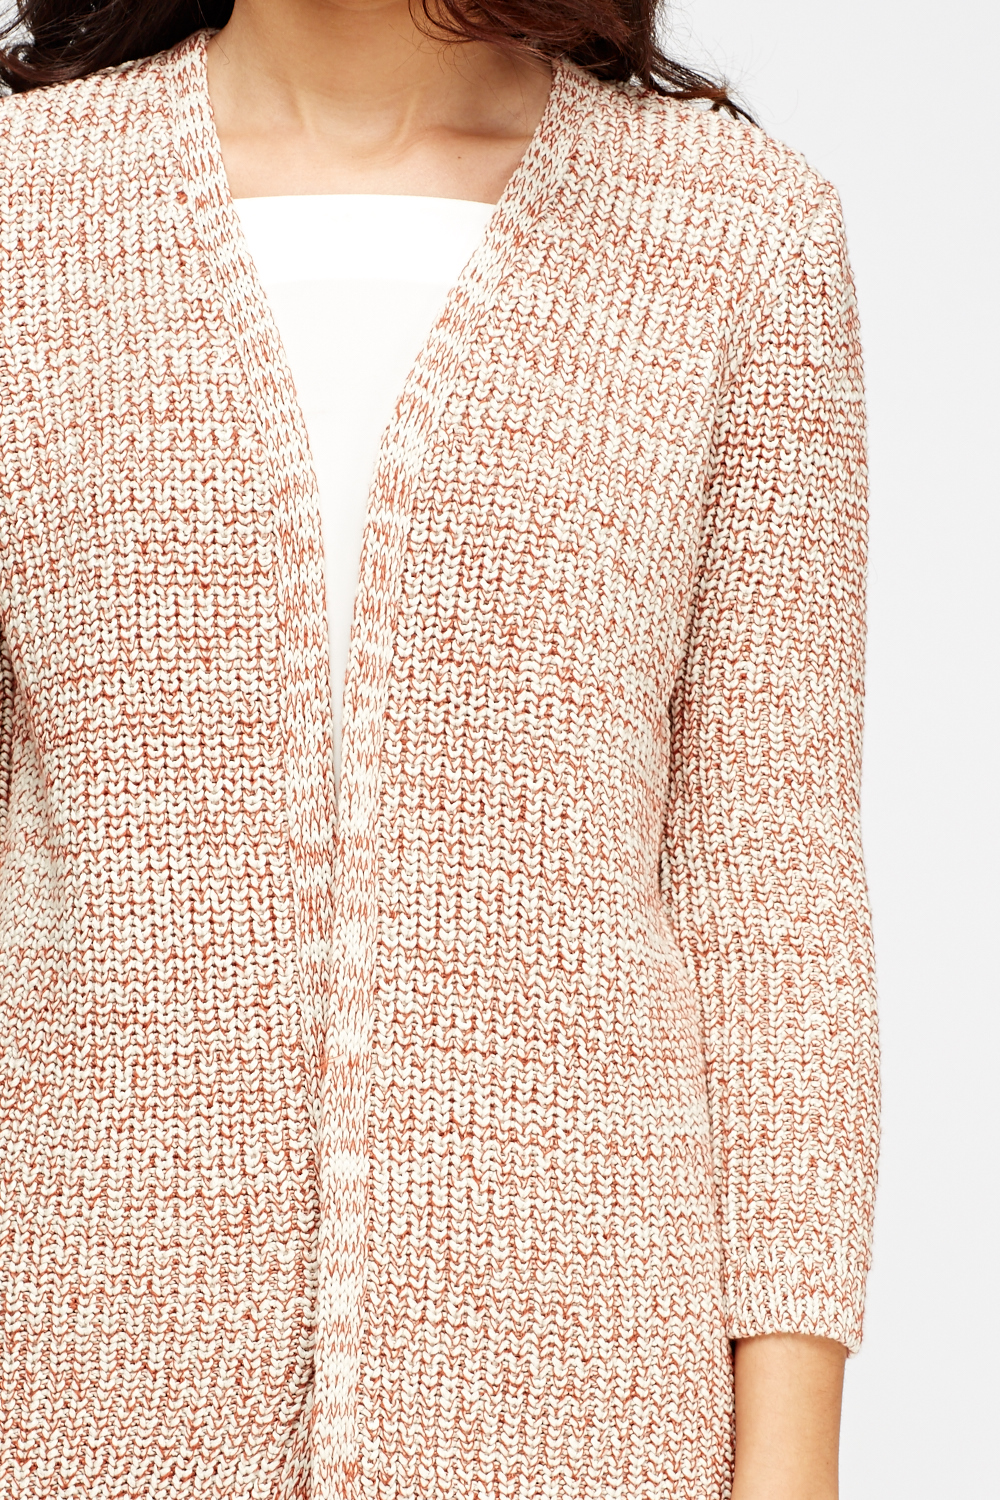 Knitting Pattern Open Front Cardigan : Open Front Knit Cardigan - Just ?5